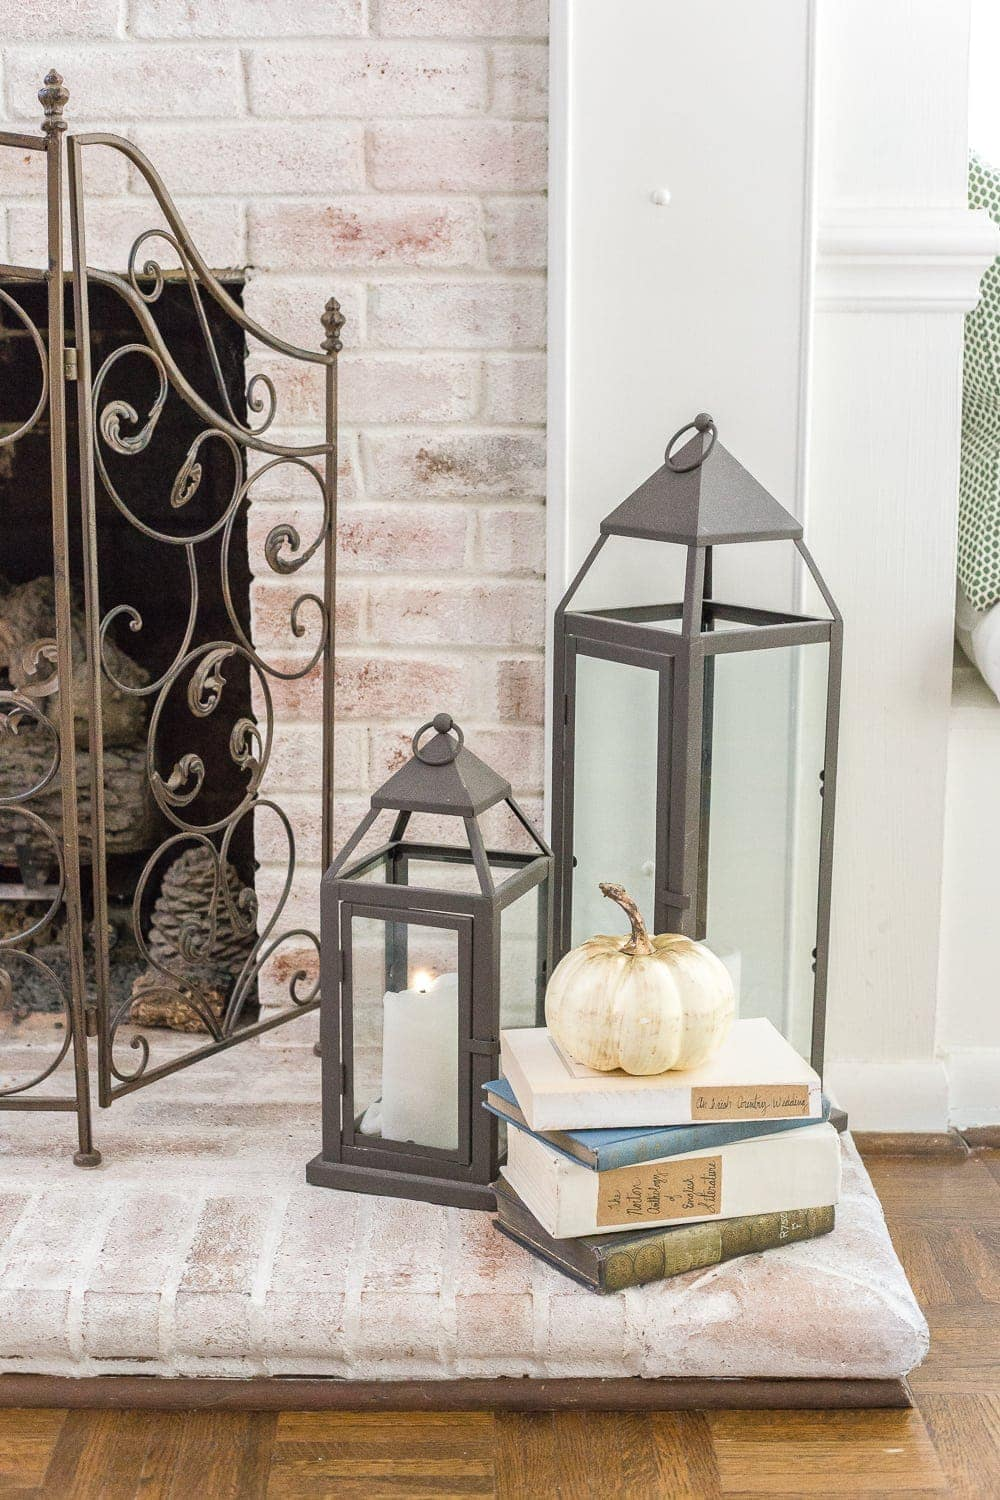 Lanterns and pumpkin on a hearth to add coziness for fall